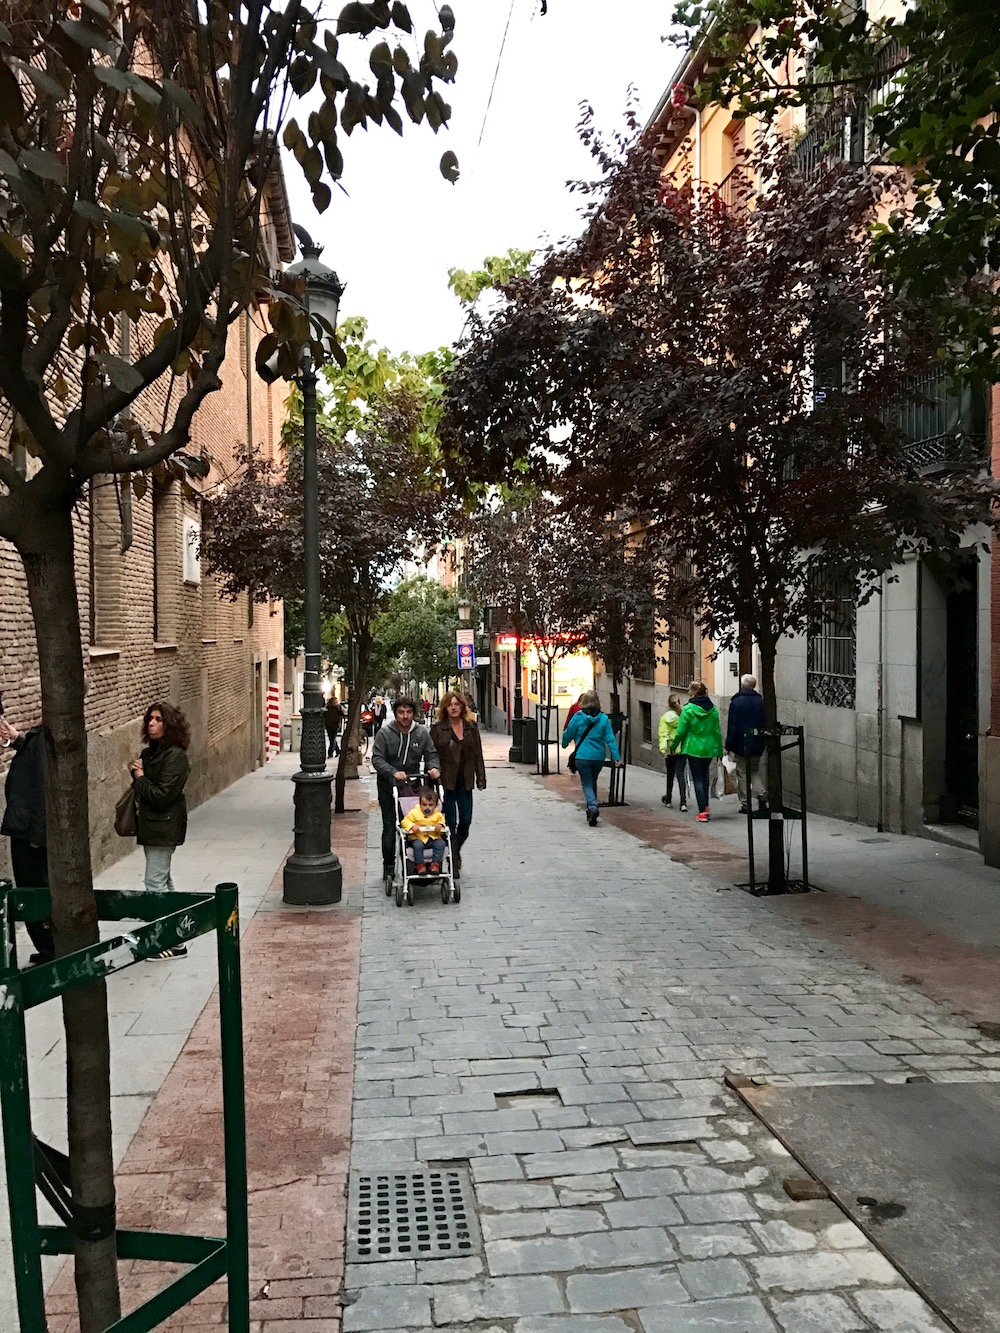 Calle de las Huertas doesn't leave much room for cars, but it's a great central street on which to find an Airbnb and your new favorite restaurant.